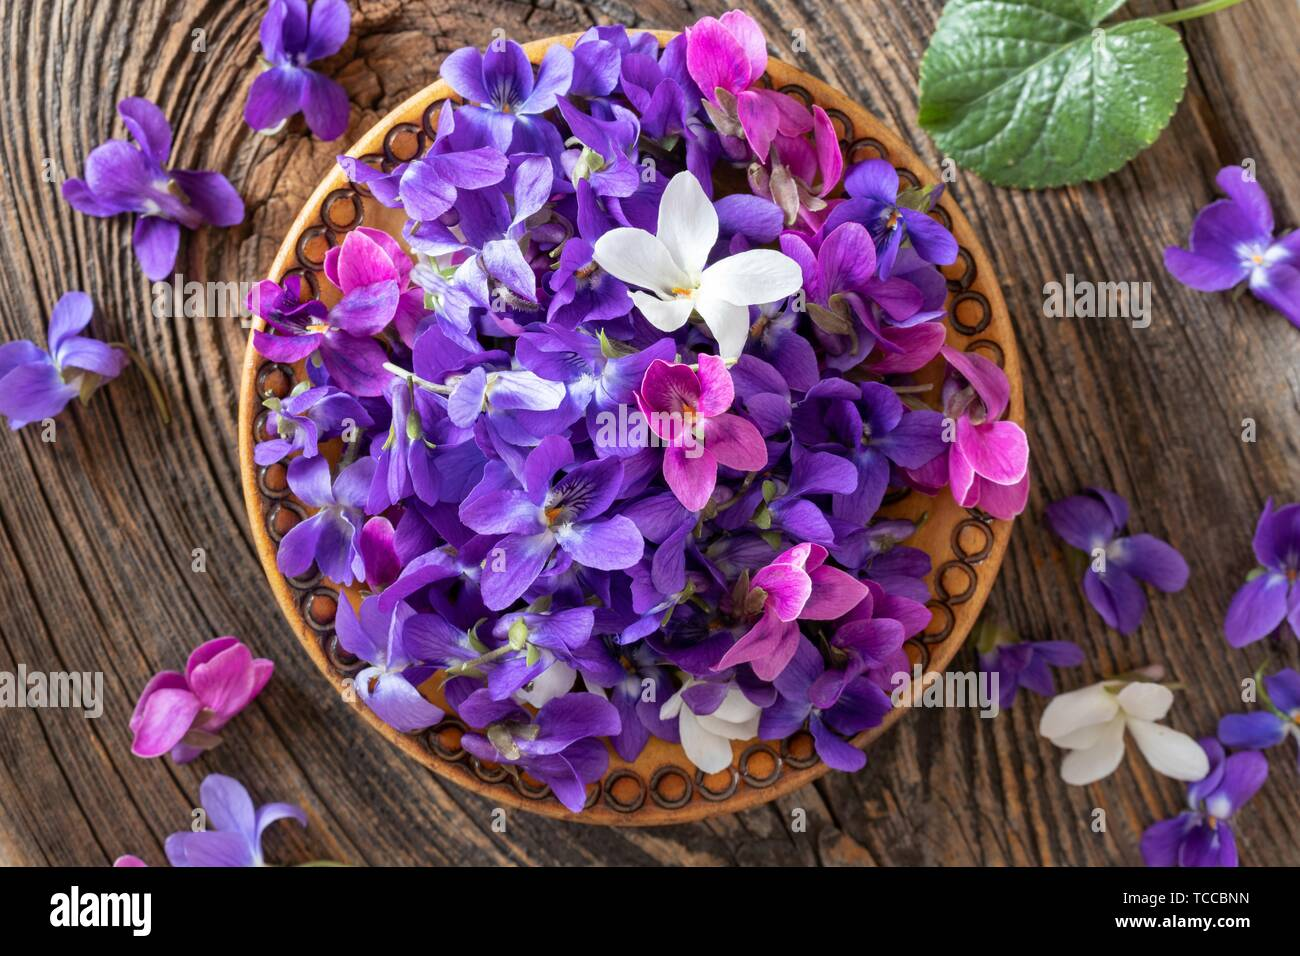 Wood violet flowers in a bowl, top view Stock Photo - Alamy